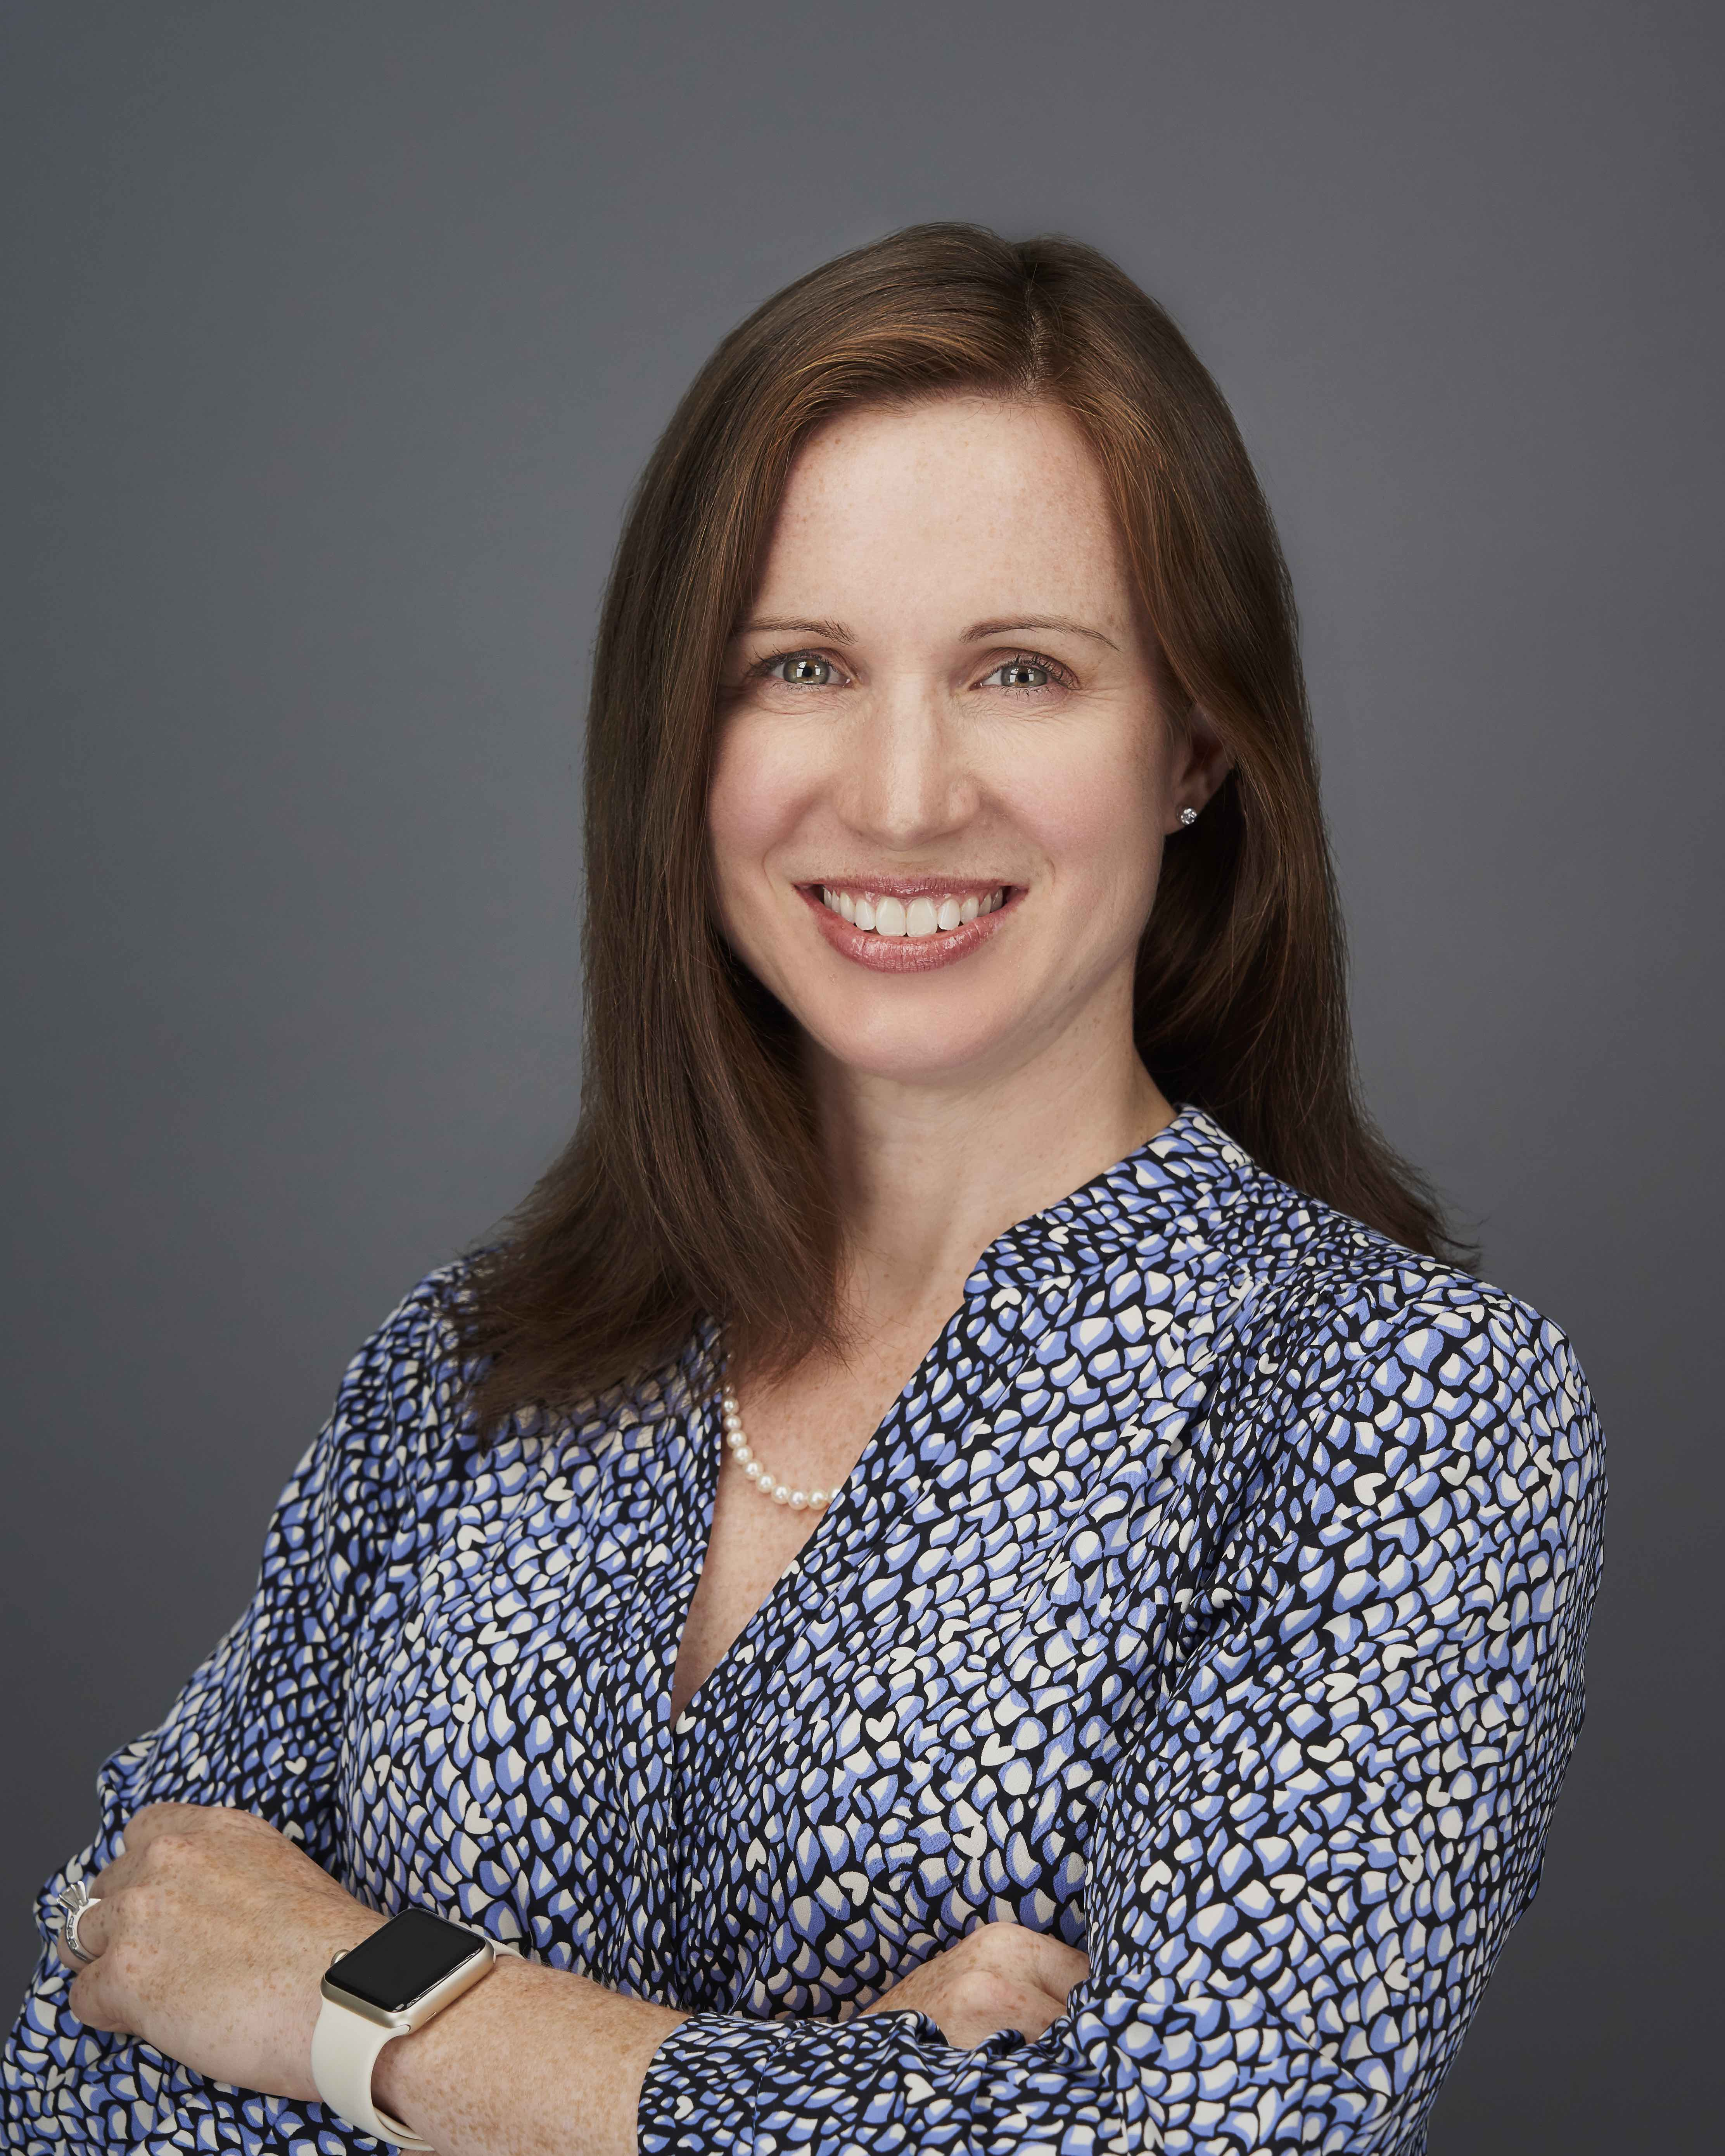 photo of Sarah Merritt, MD